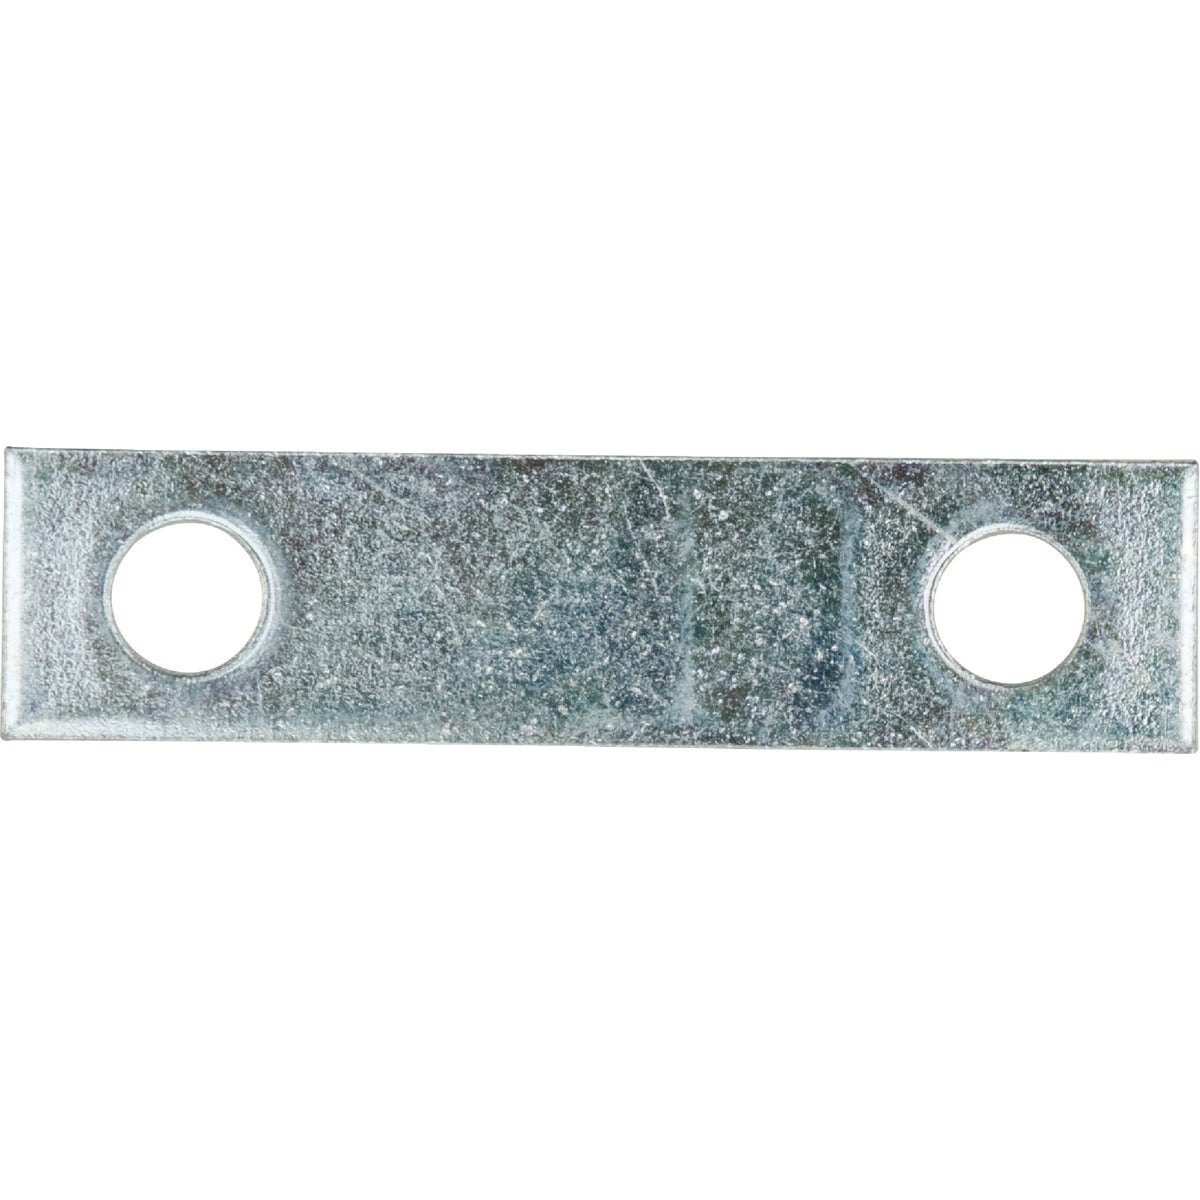 2X1/2 MENDING BRACE - N272716 by National Mfg Co